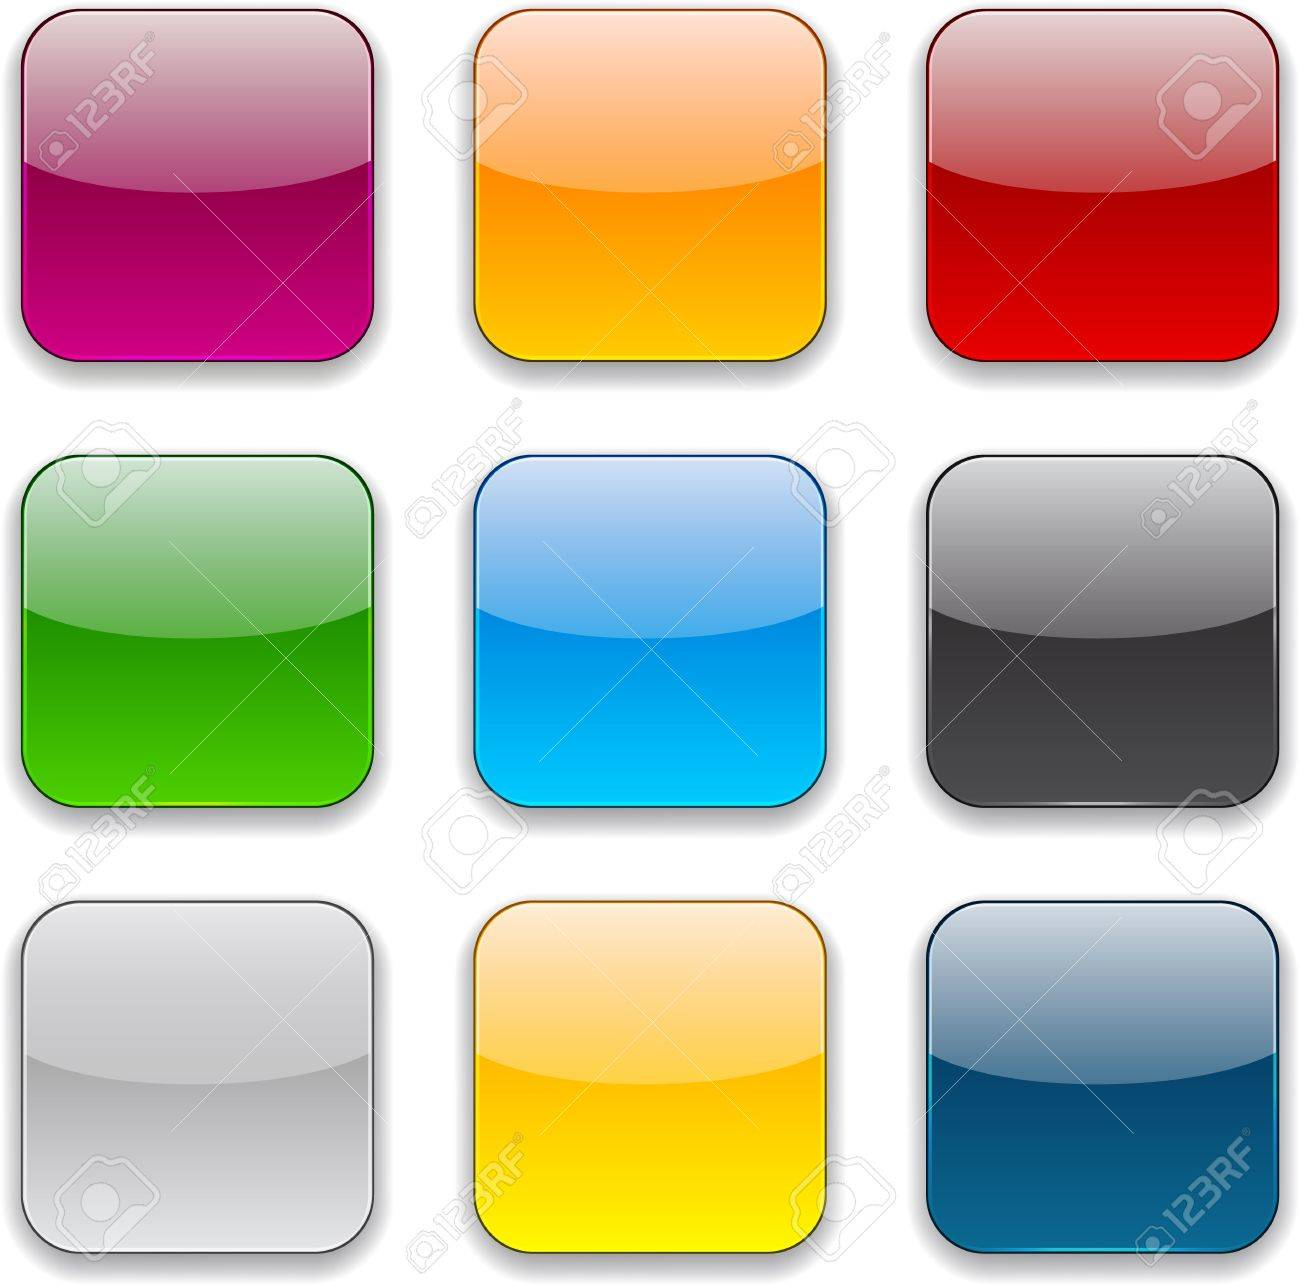 Set of blank colorful square buttons for website or app